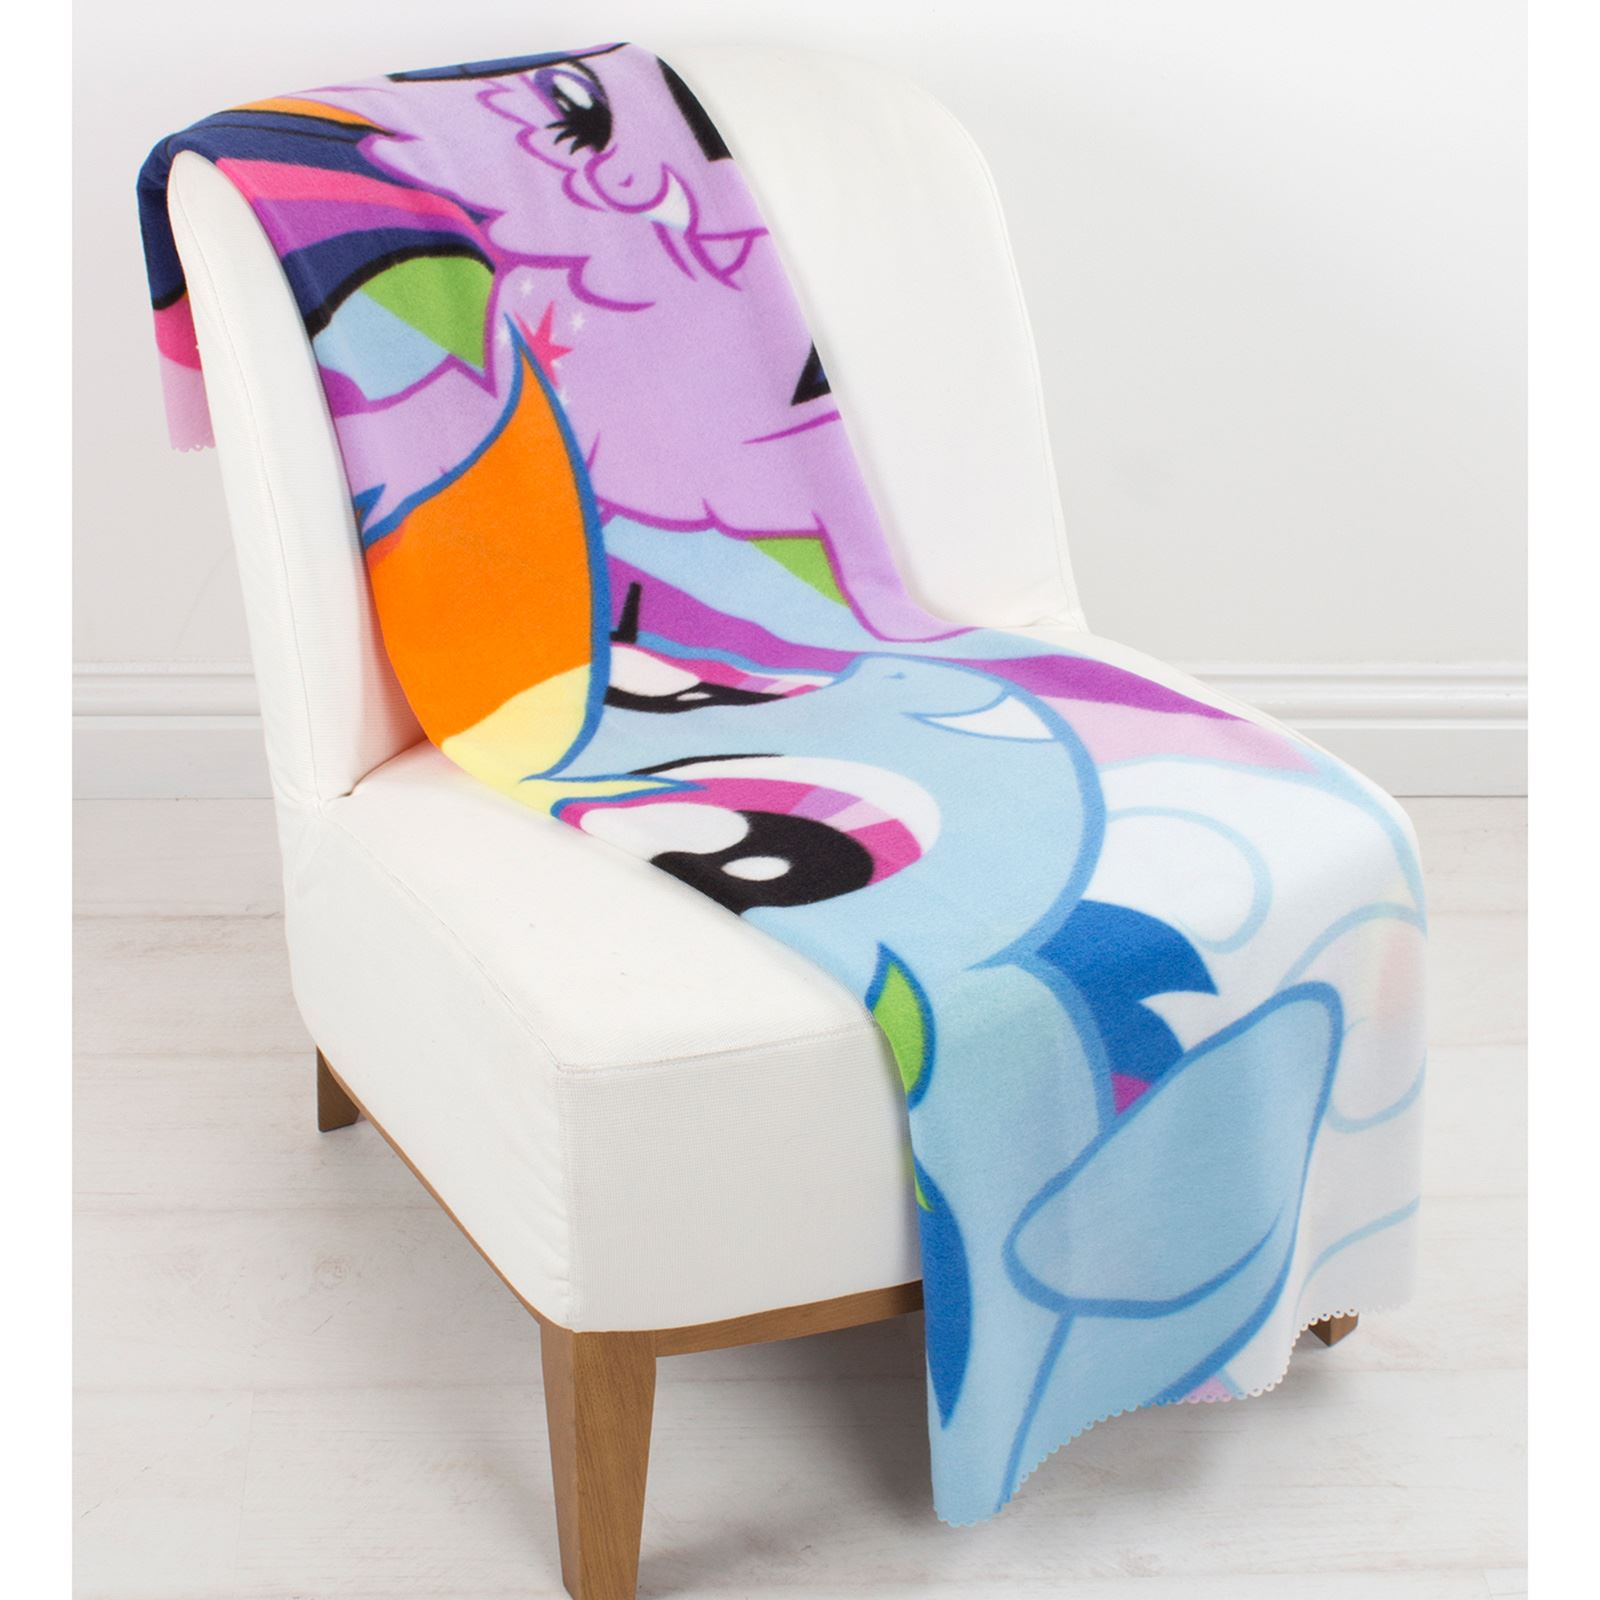 my little pony table and chairs bean bag chair covers large fleece blanket new bedding